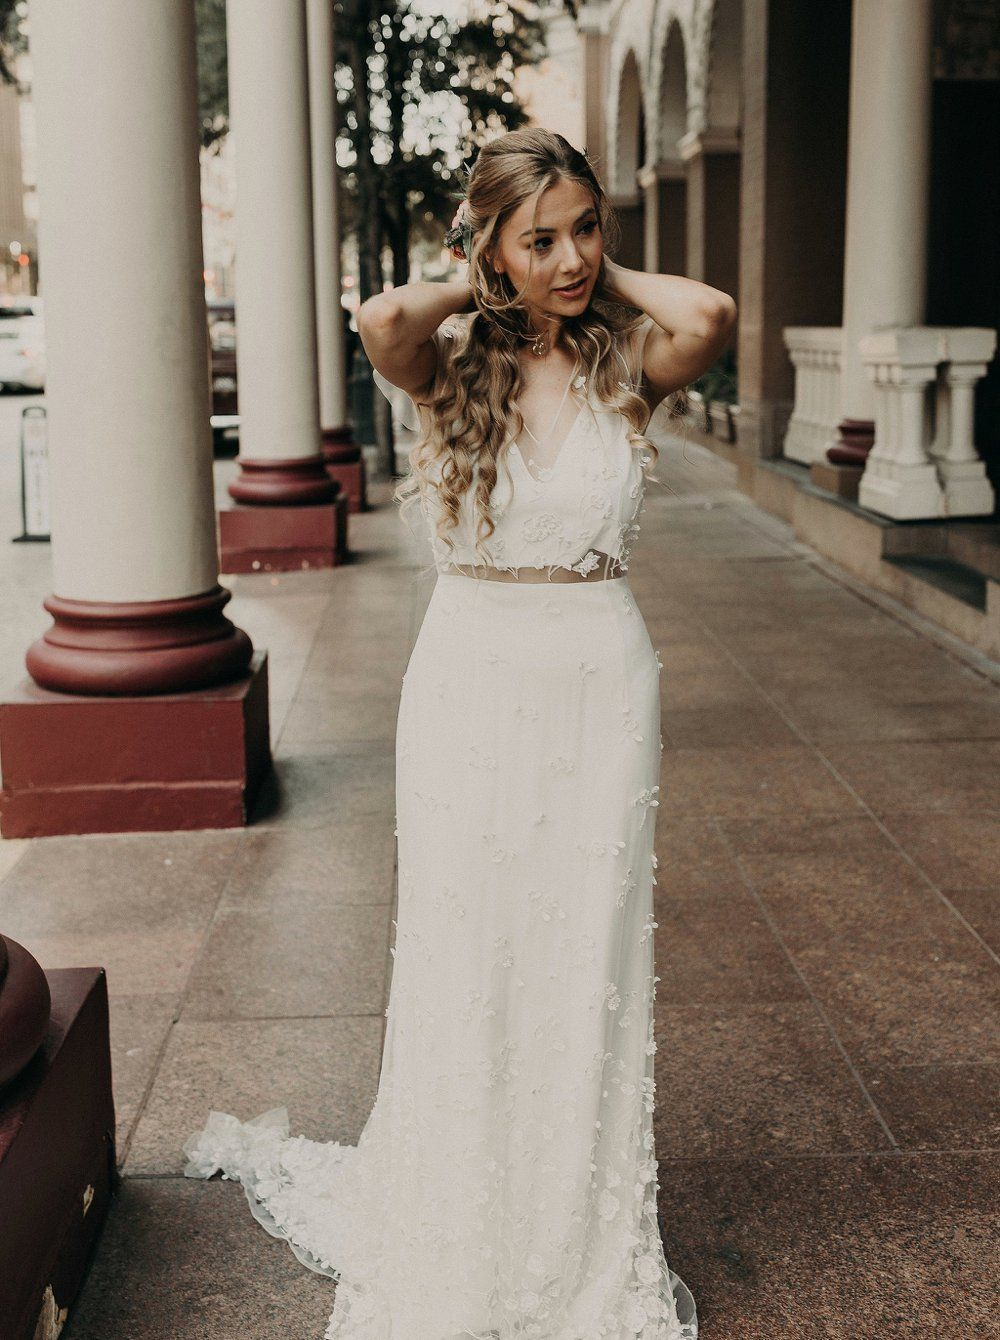 Urban Cliffside Styled Shoot In Austin Boho Wedding Inspiration Bridal Gowns Vintage Boho Bridal Gowns